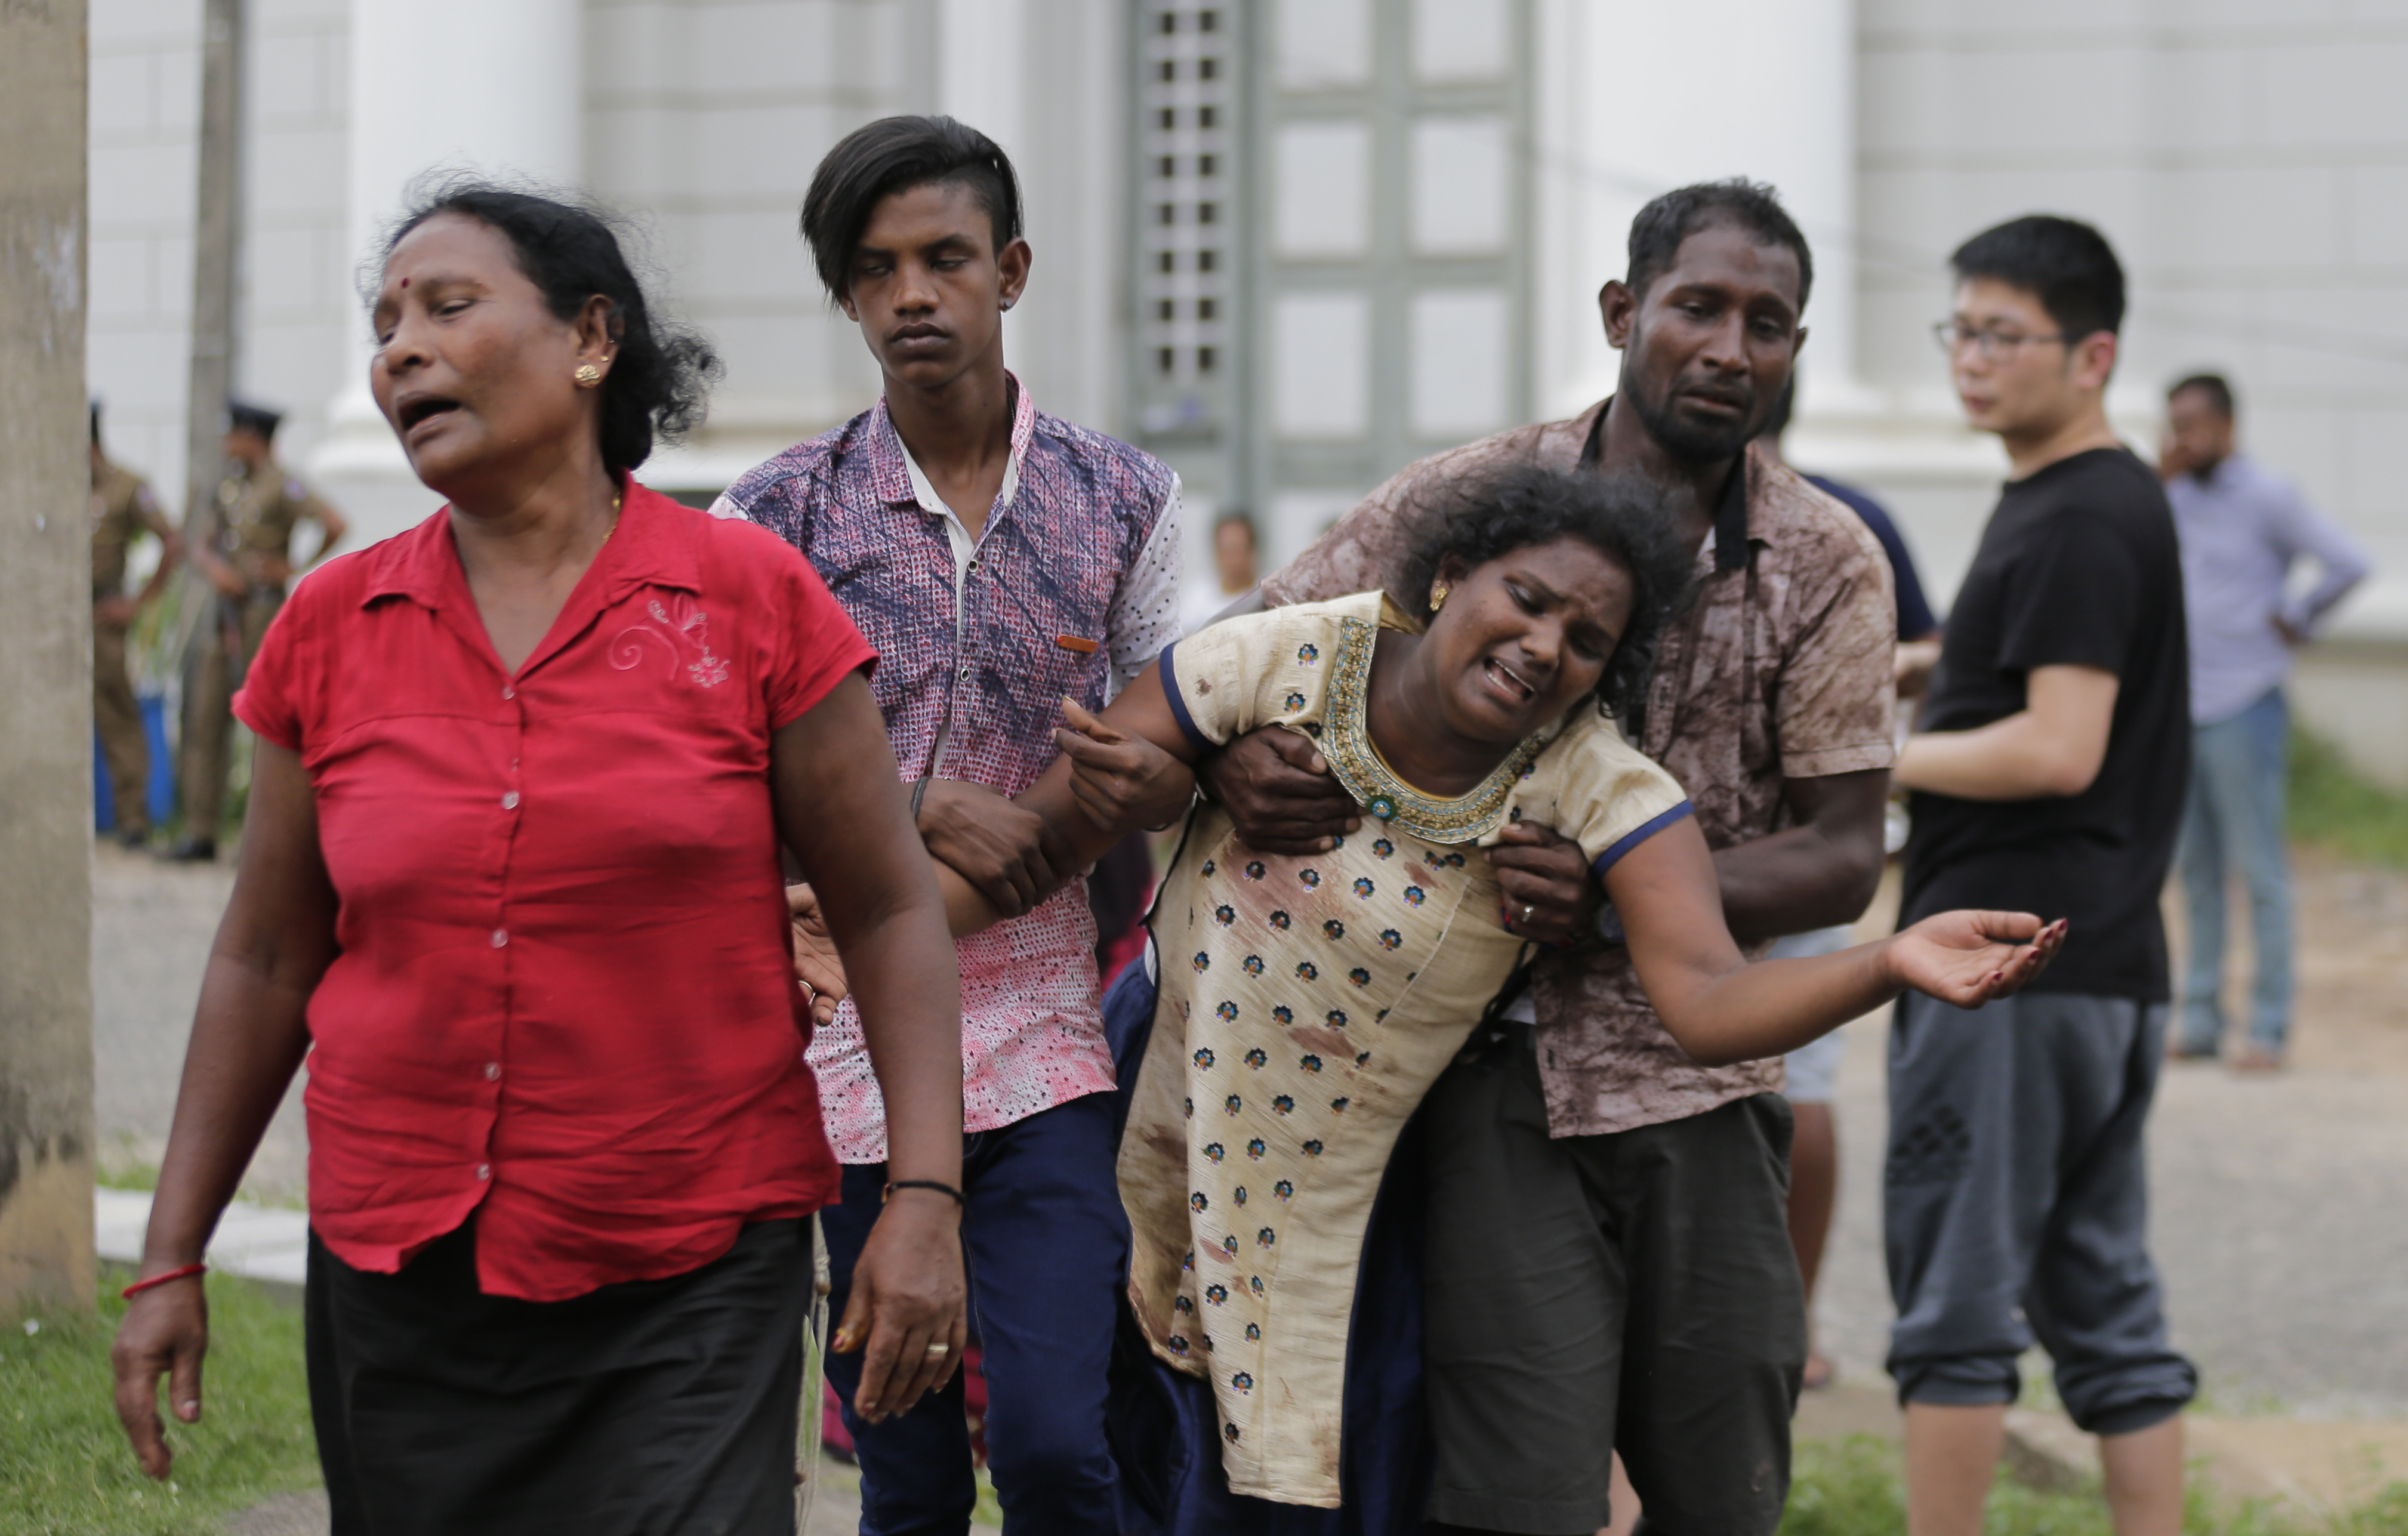 Relatives of a blast victim grieve outside a morgue in Colombo, Sri Lanka, Sunday, April 21, 2019. More than hundred were killed and hundreds more hospitalized with injuries from eight blasts that rocked churches and hotels in and just outside of Sri Lanka's capital on Easter Sunday, officials said, the worst violence to hit the South Asian country since its civil war ended a decade ago.